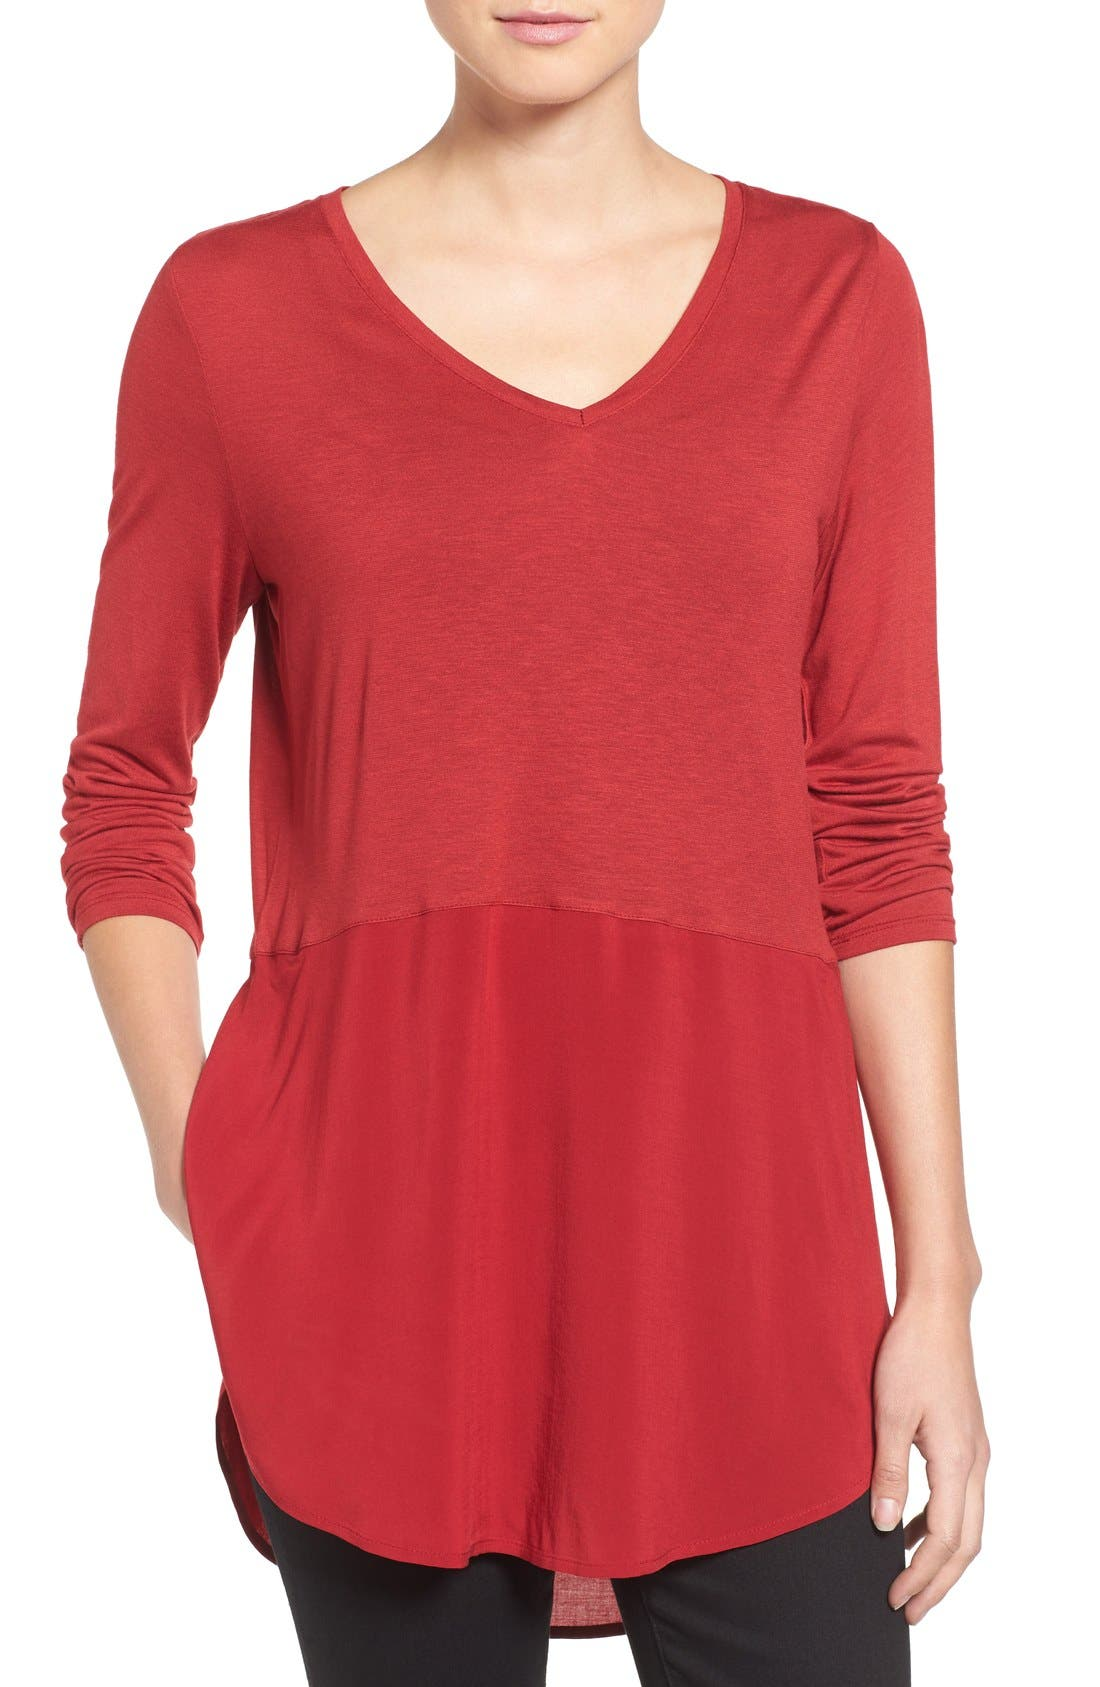 Alternate Image 1 Selected - Two by Vince Camuto Mixed Media V-Neck Tunic